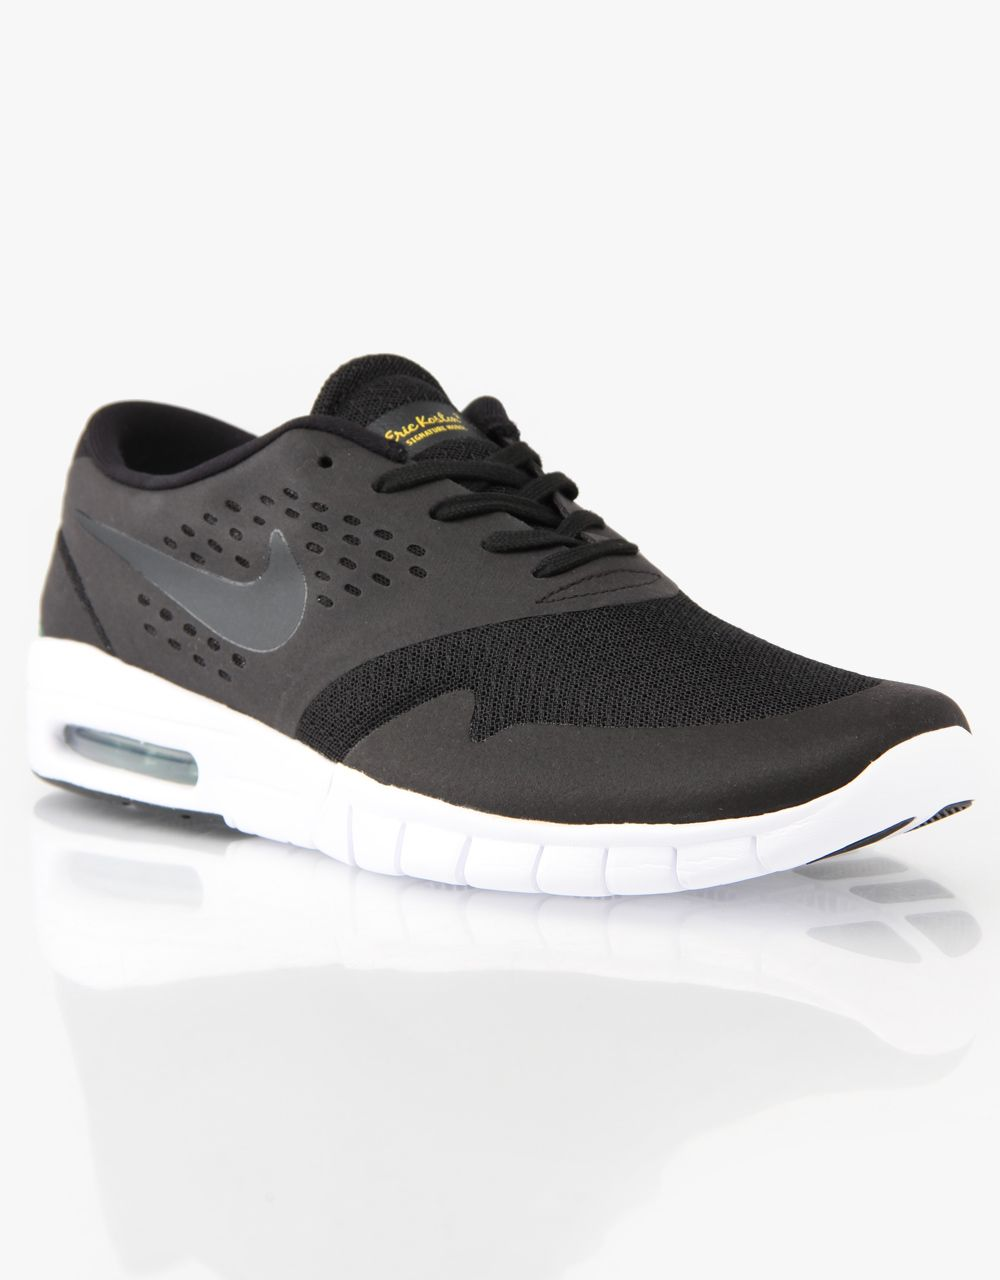 Buy Nike SB Eric Koston 2 Max Shoes - Black/Black-Vrsty Maize-Pn Grn online  today for just from Route One.